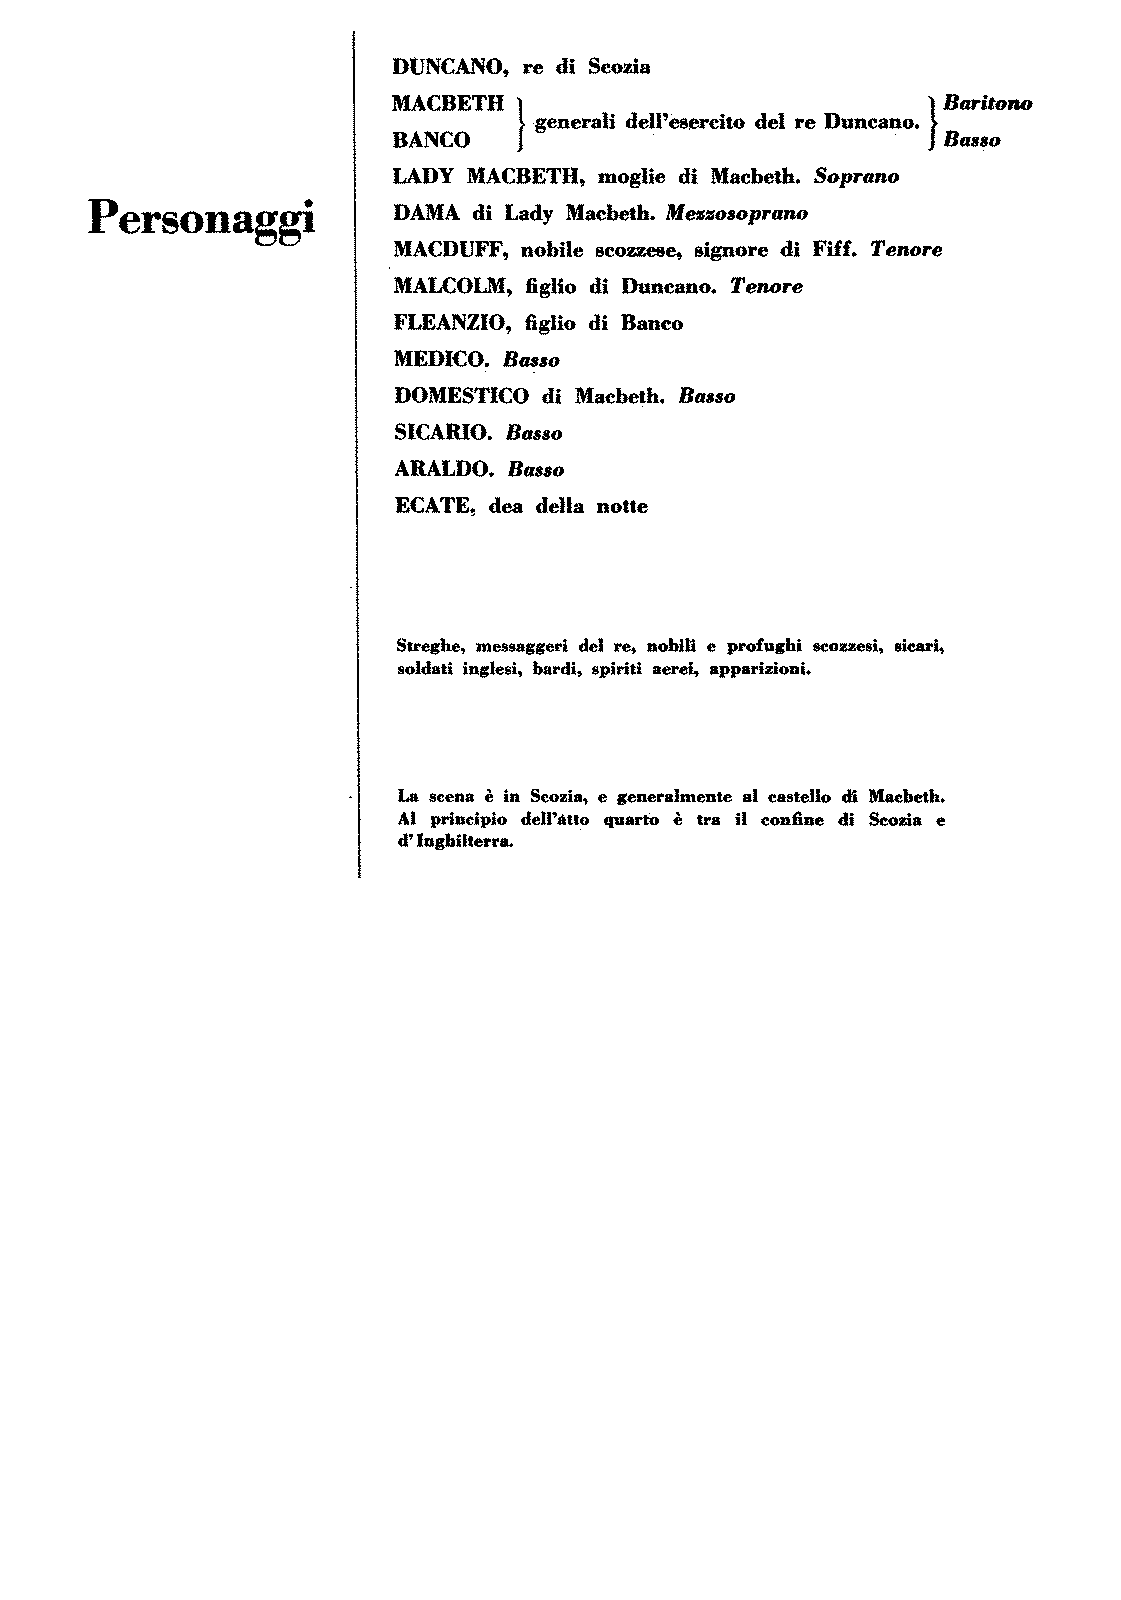 PMLP55443-Verdi - Macbeth (vocal score).pdf